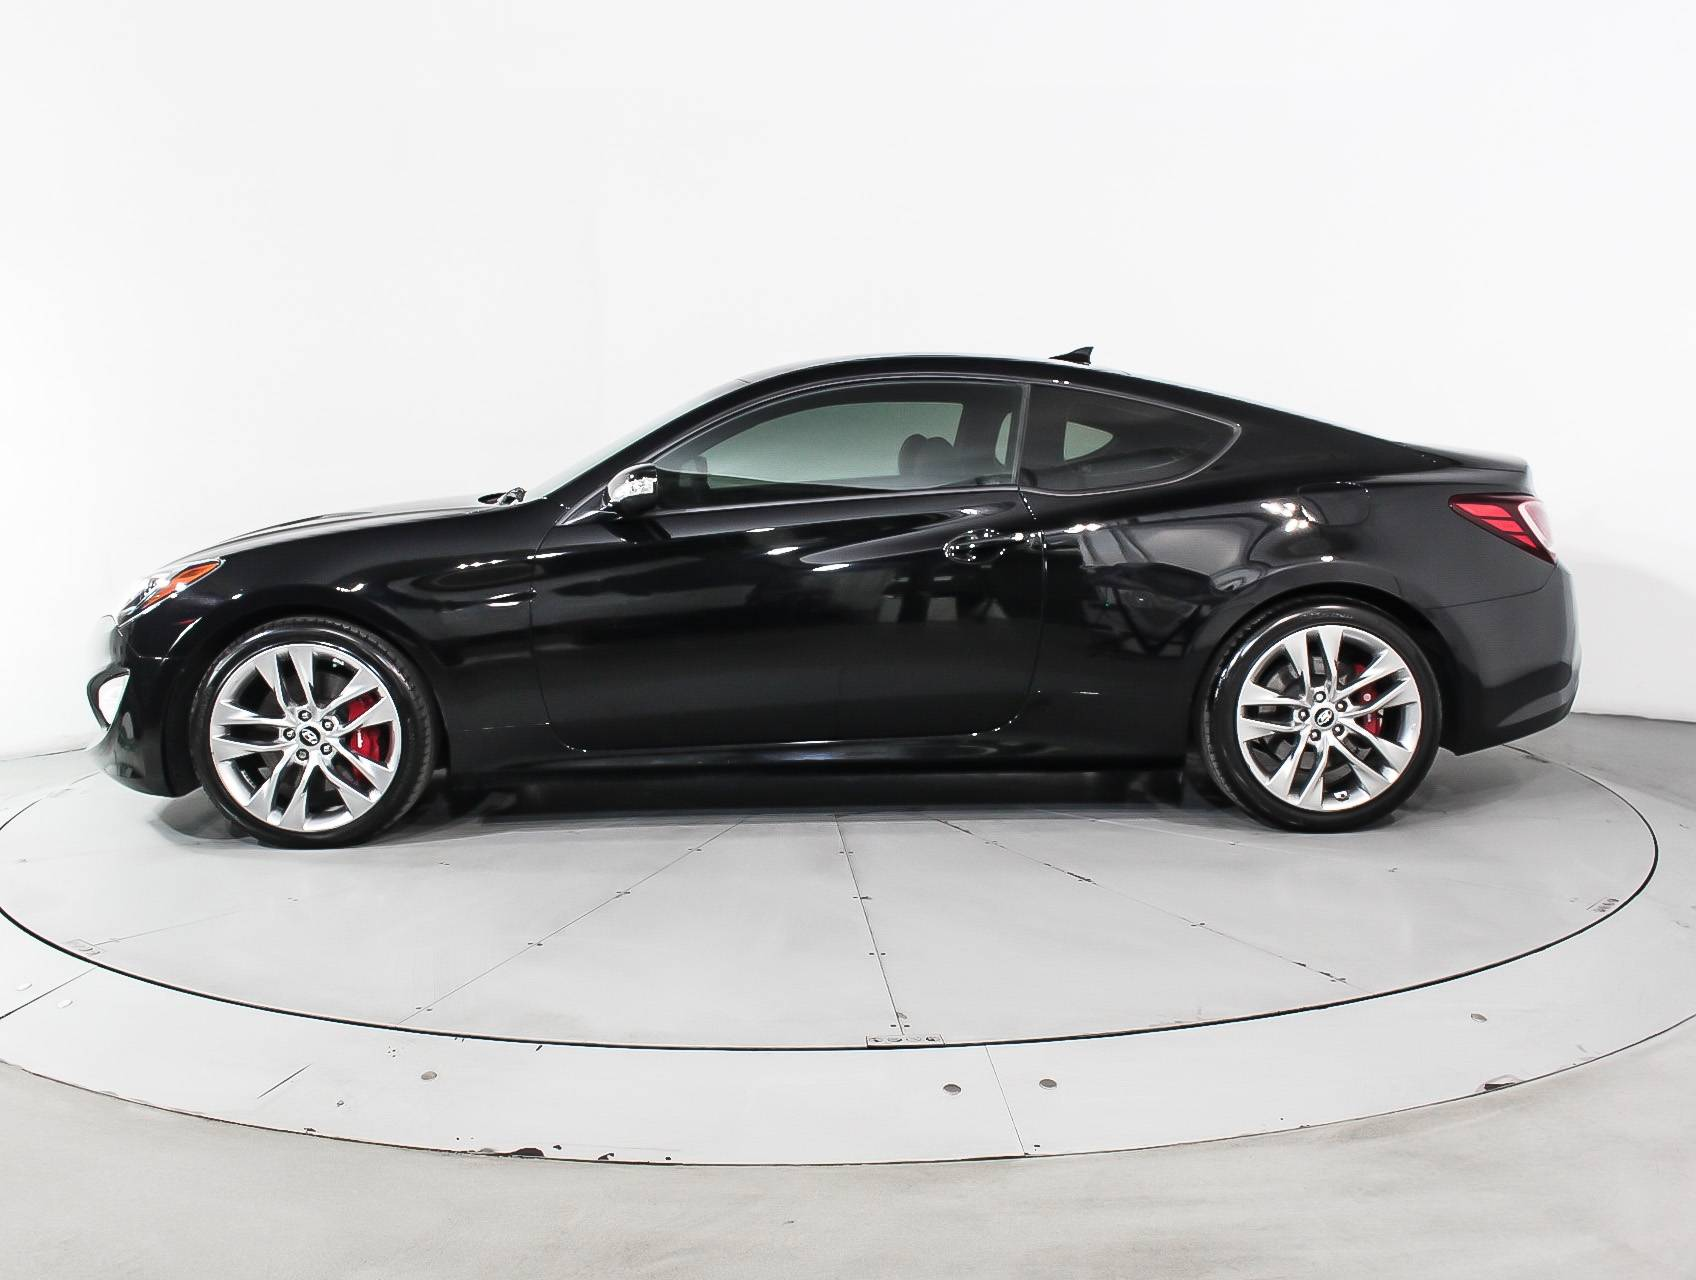 Used Hyundai Genesis for Sale Inspirational Used 2016 Hyundai Genesis Coupe 3 8 R Spec Coupe for Sale In West